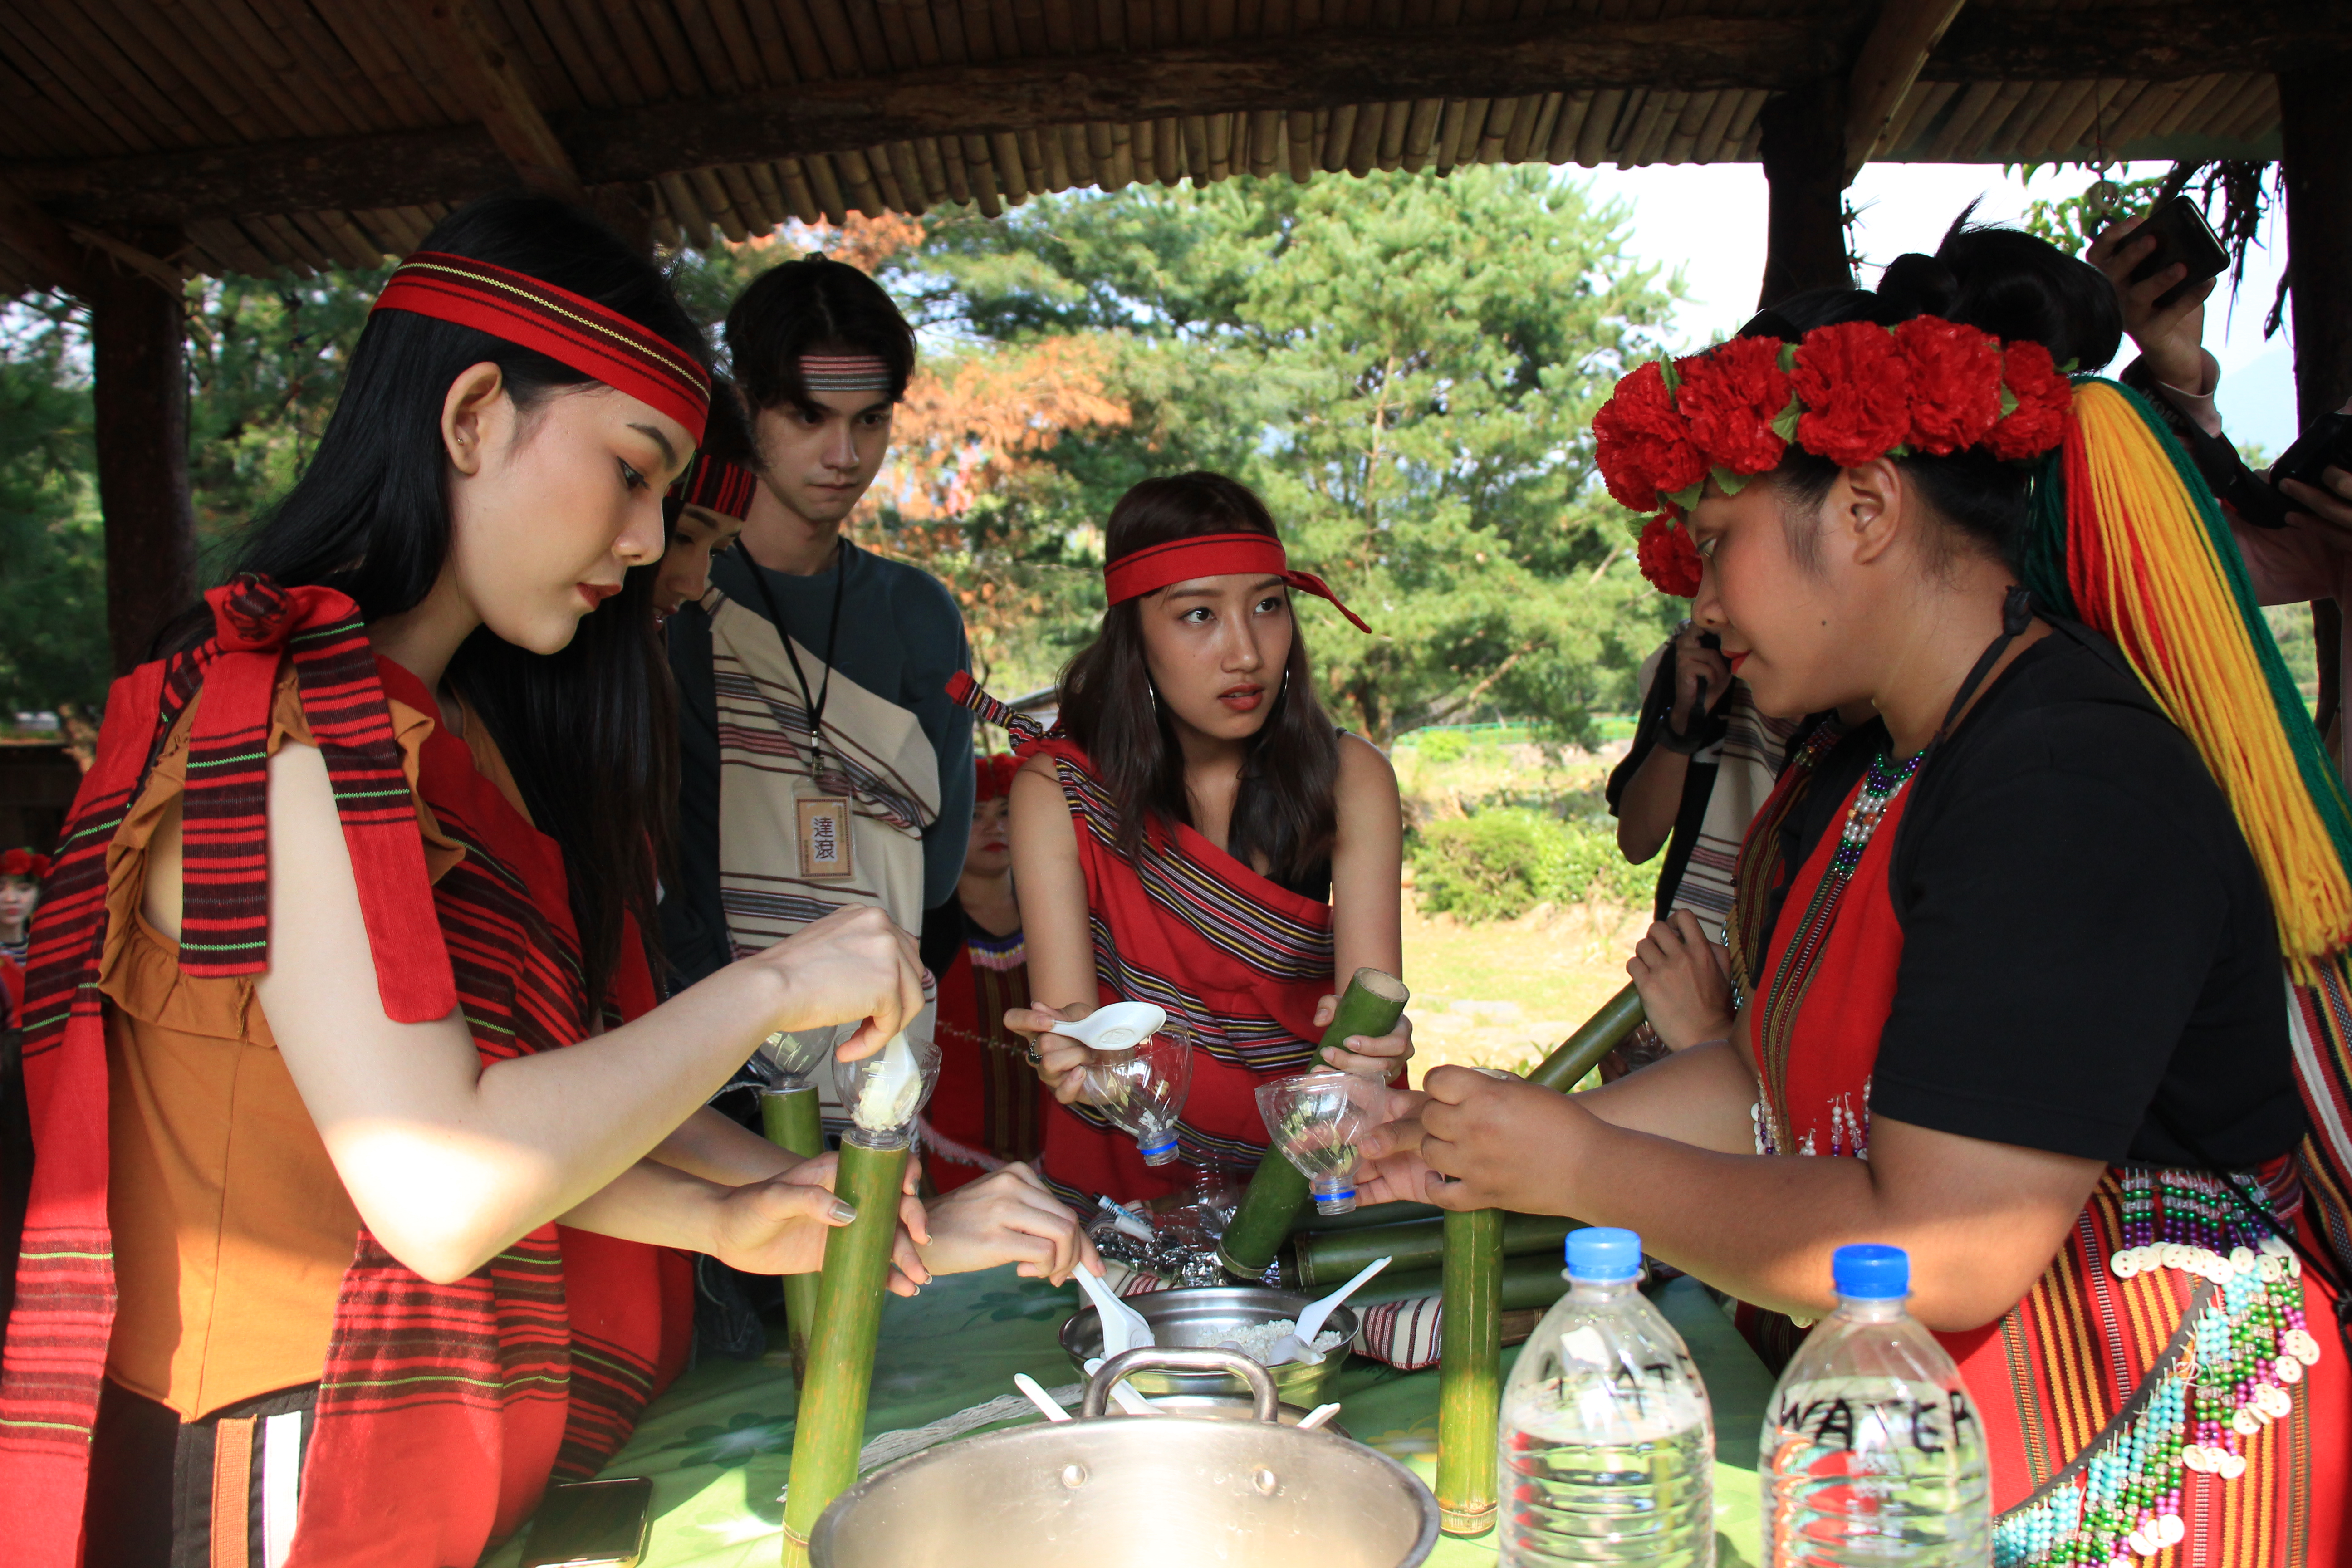 Taiwan puts a lot of effort into attracting tourists from Vietnam